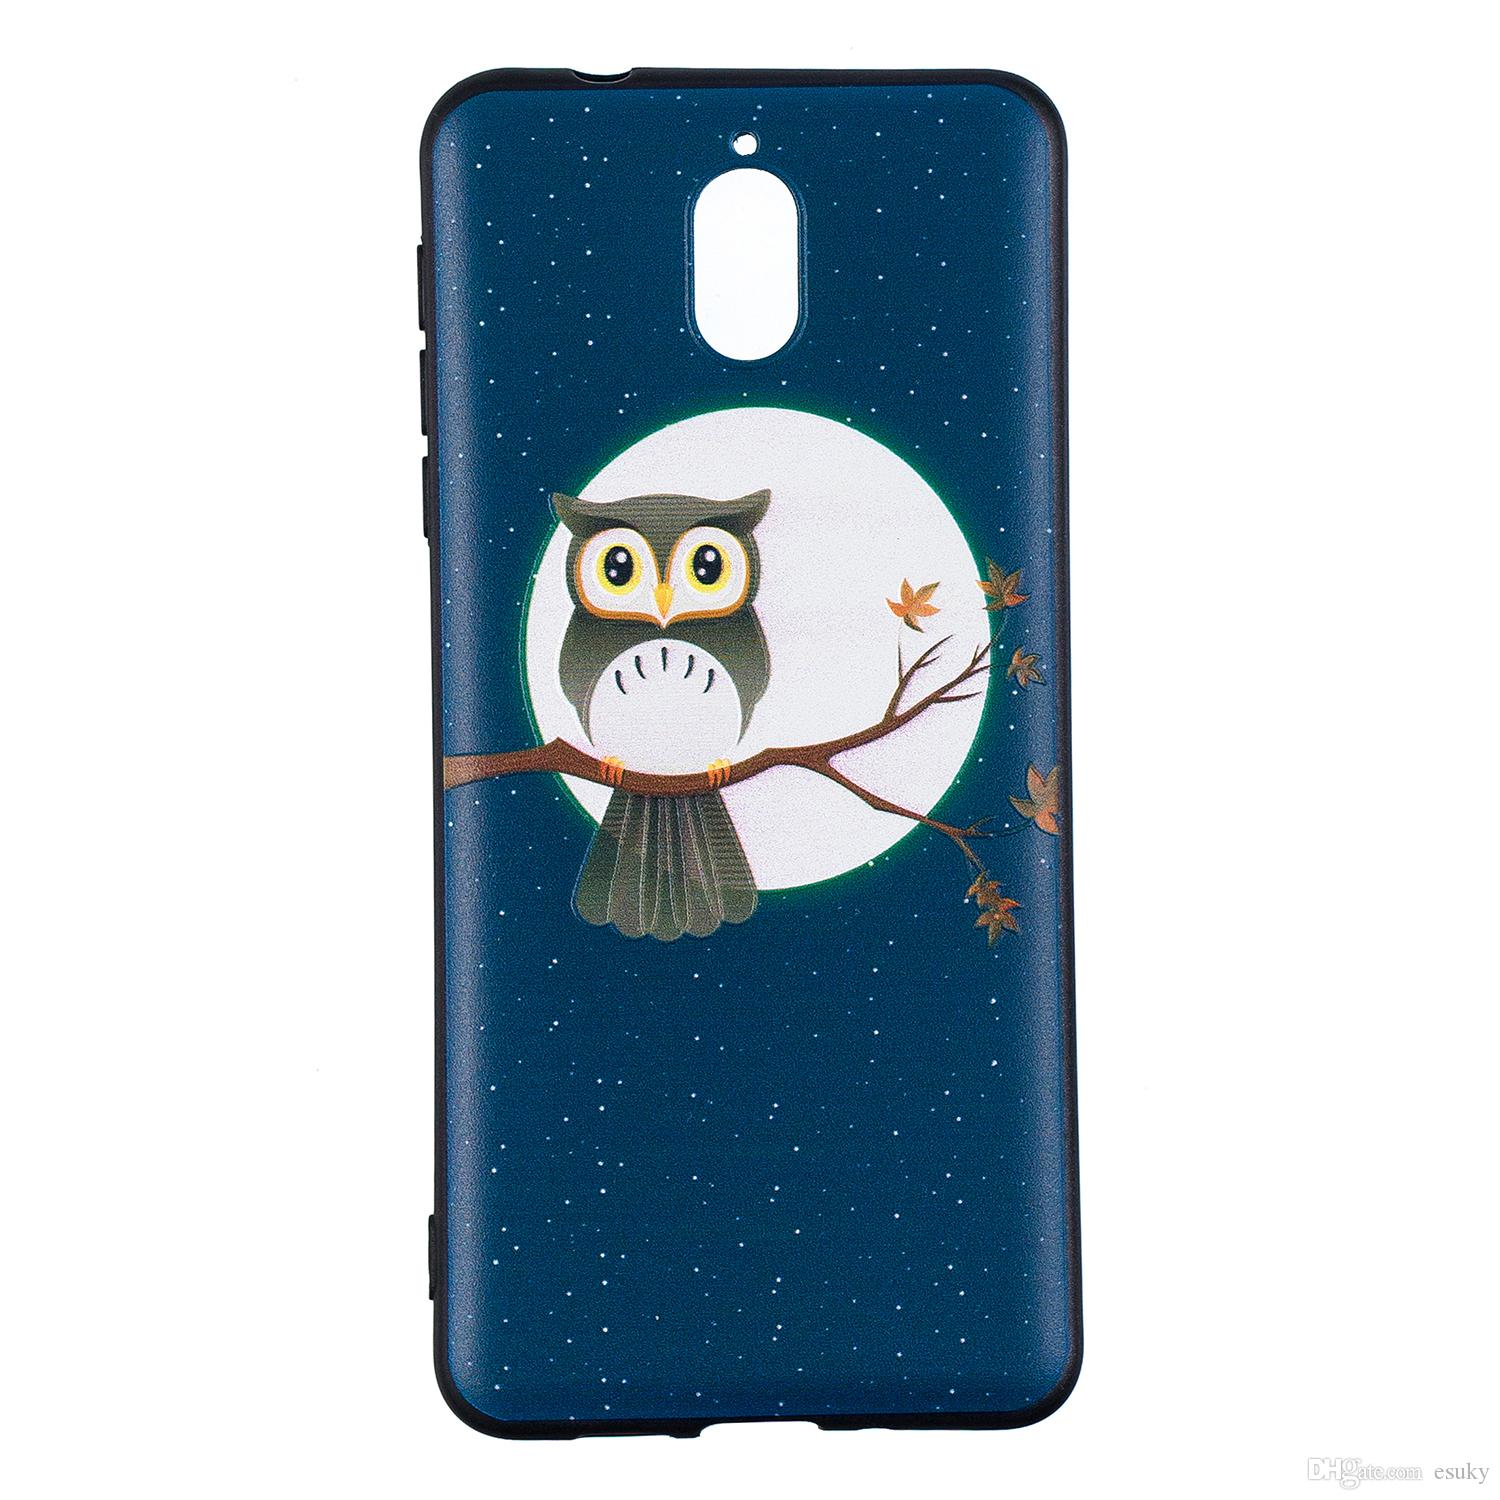 For3 1 2018 Case Soft Flexible Slim Fit Tpu Protective Cell Phone Back Skin Cover Case With Navy Blue Owl Pattern Discount Cell Phone Cases Free Cell Phone